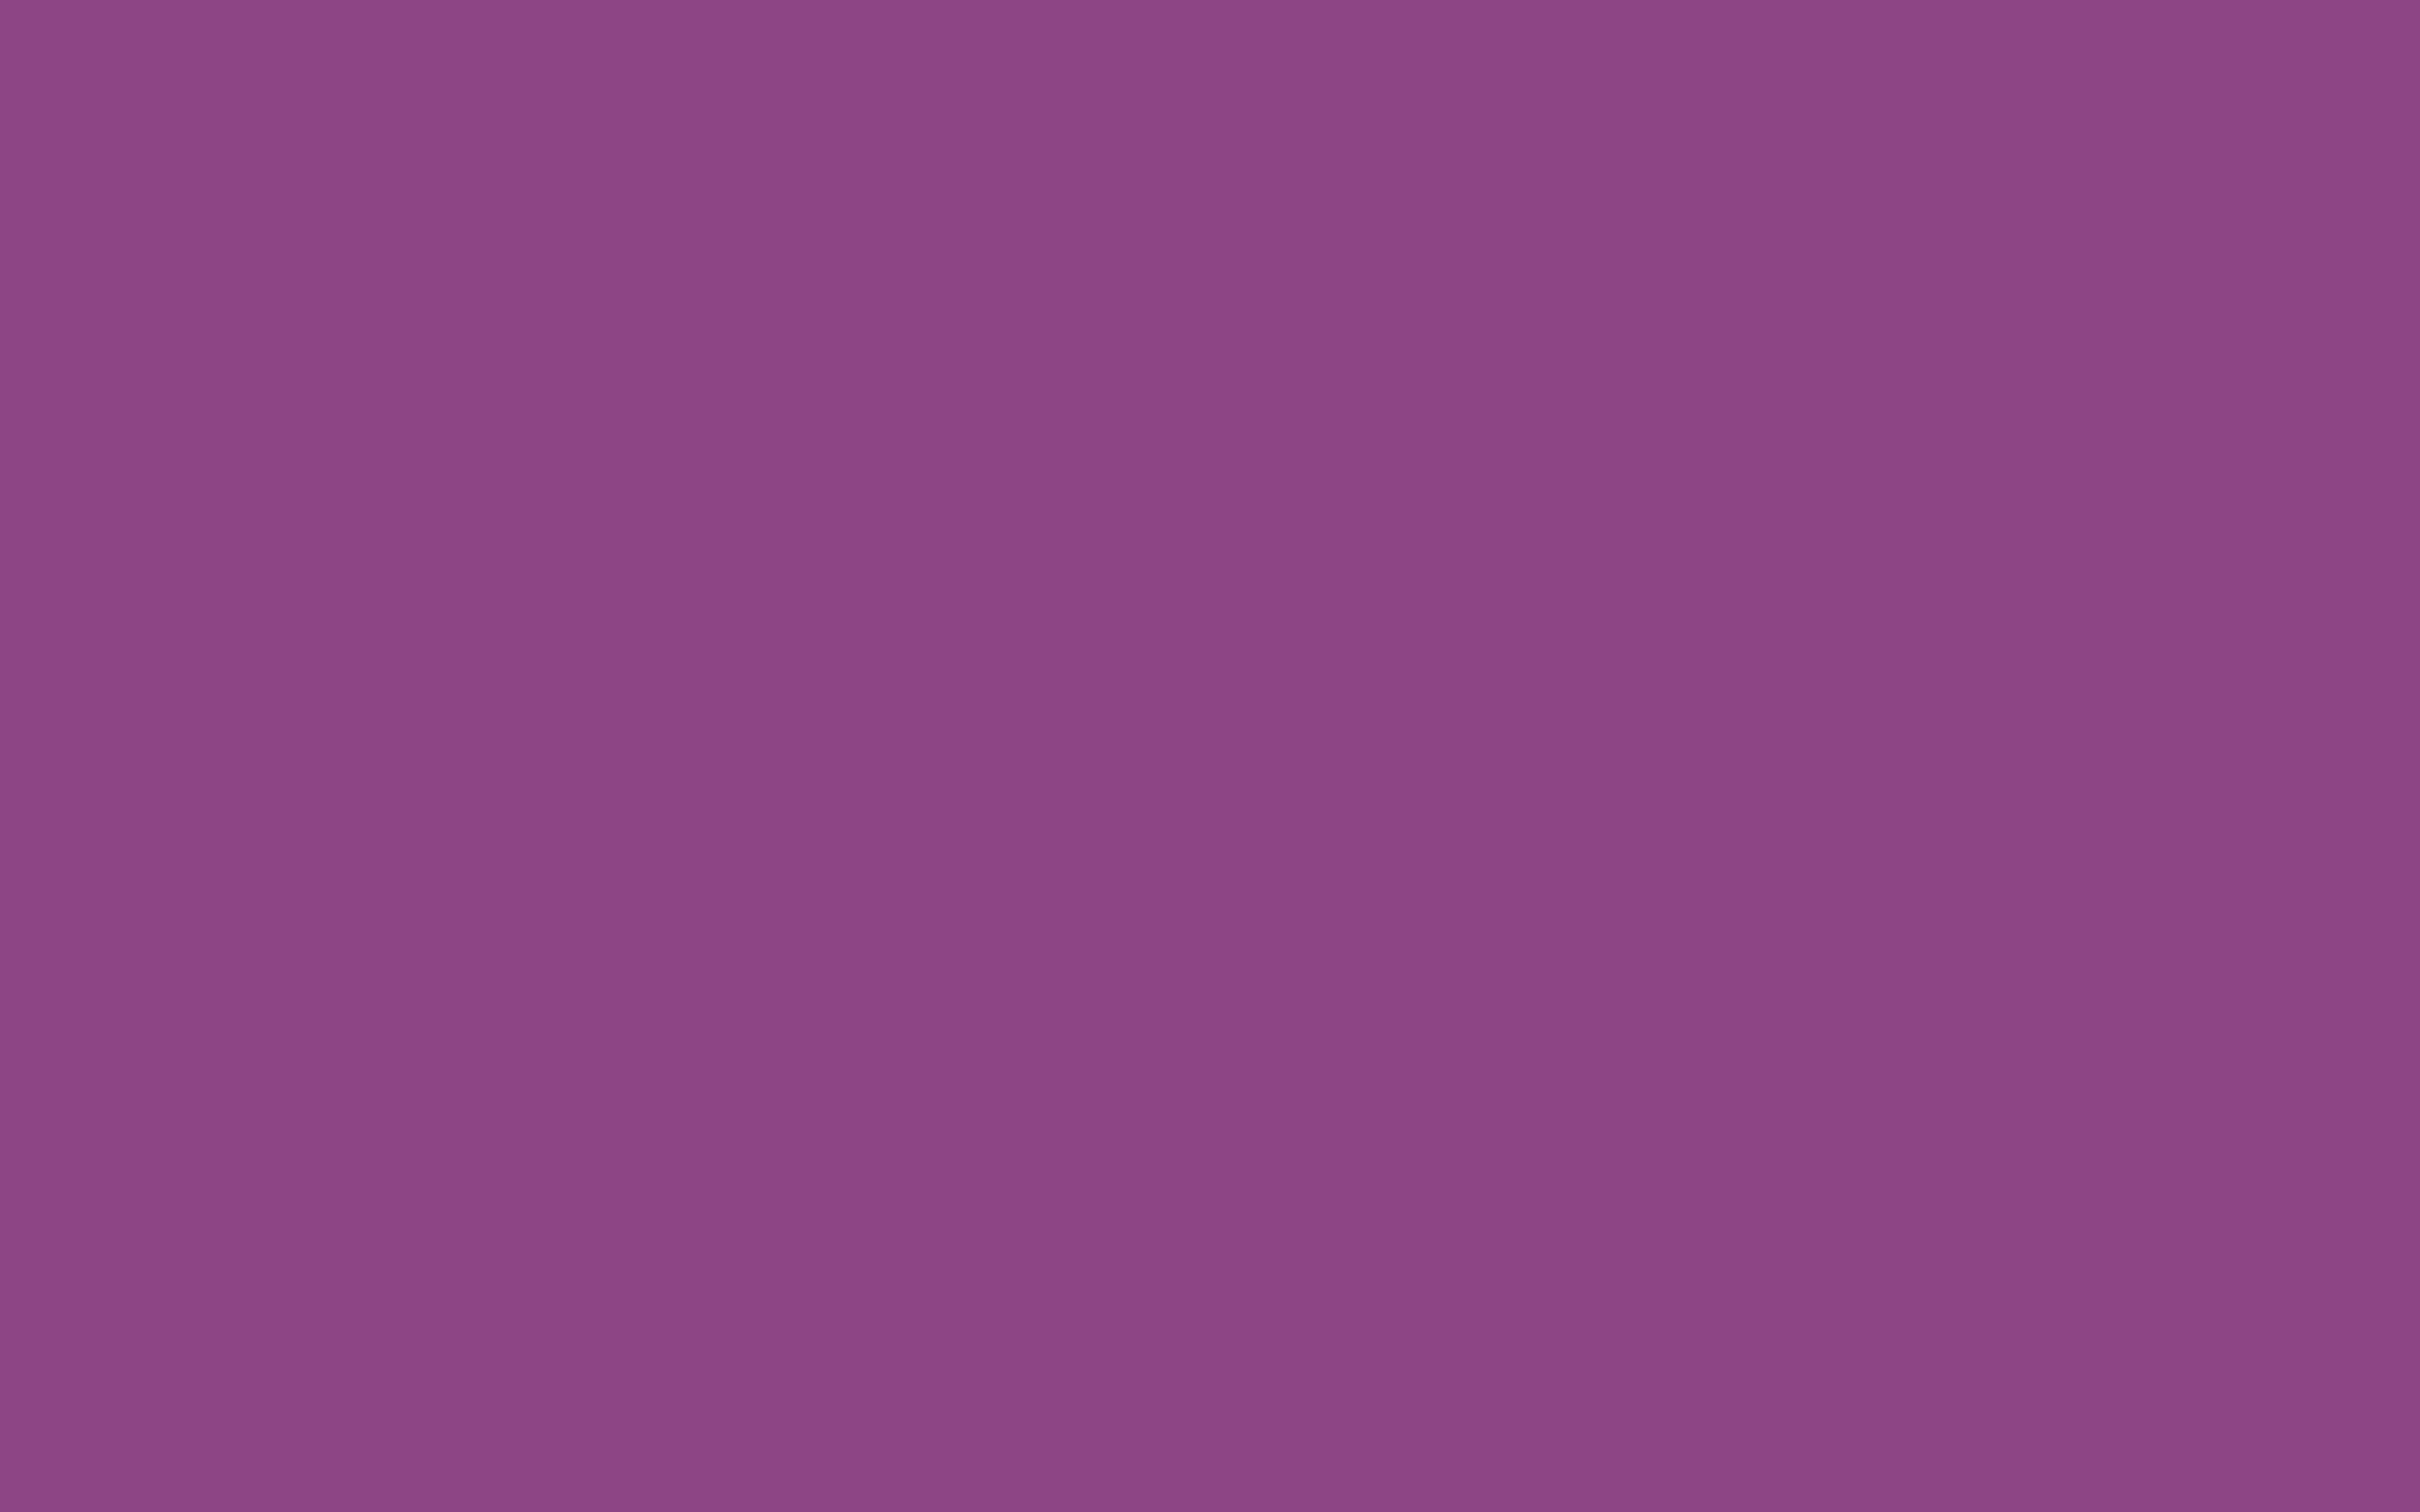 2560x1600 Plum Traditional Solid Color Background